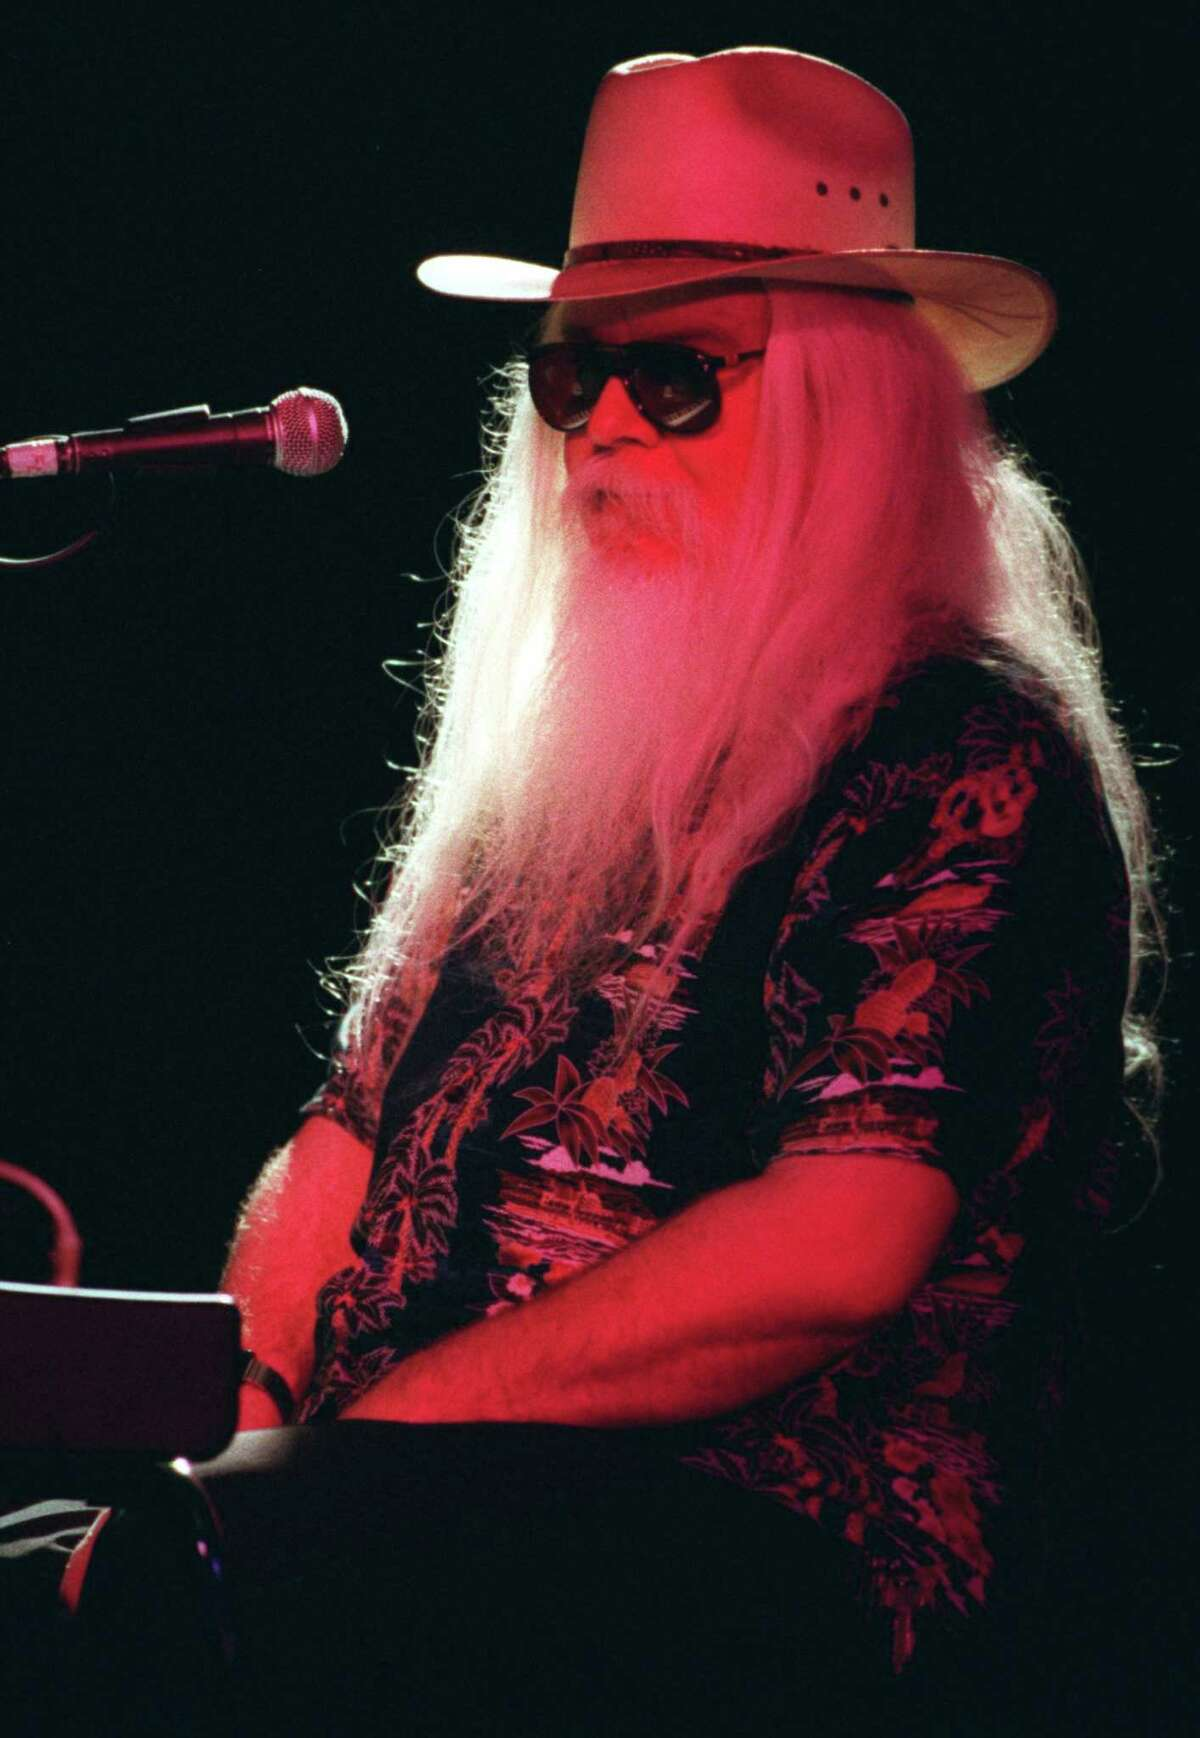 Leon Russell takes in the applause as he performs Nov. 18, 1996 at the Coach House in San Juan Capistrano, Calif. (Alexander Gallardo/Los Angeles Times/TNS)